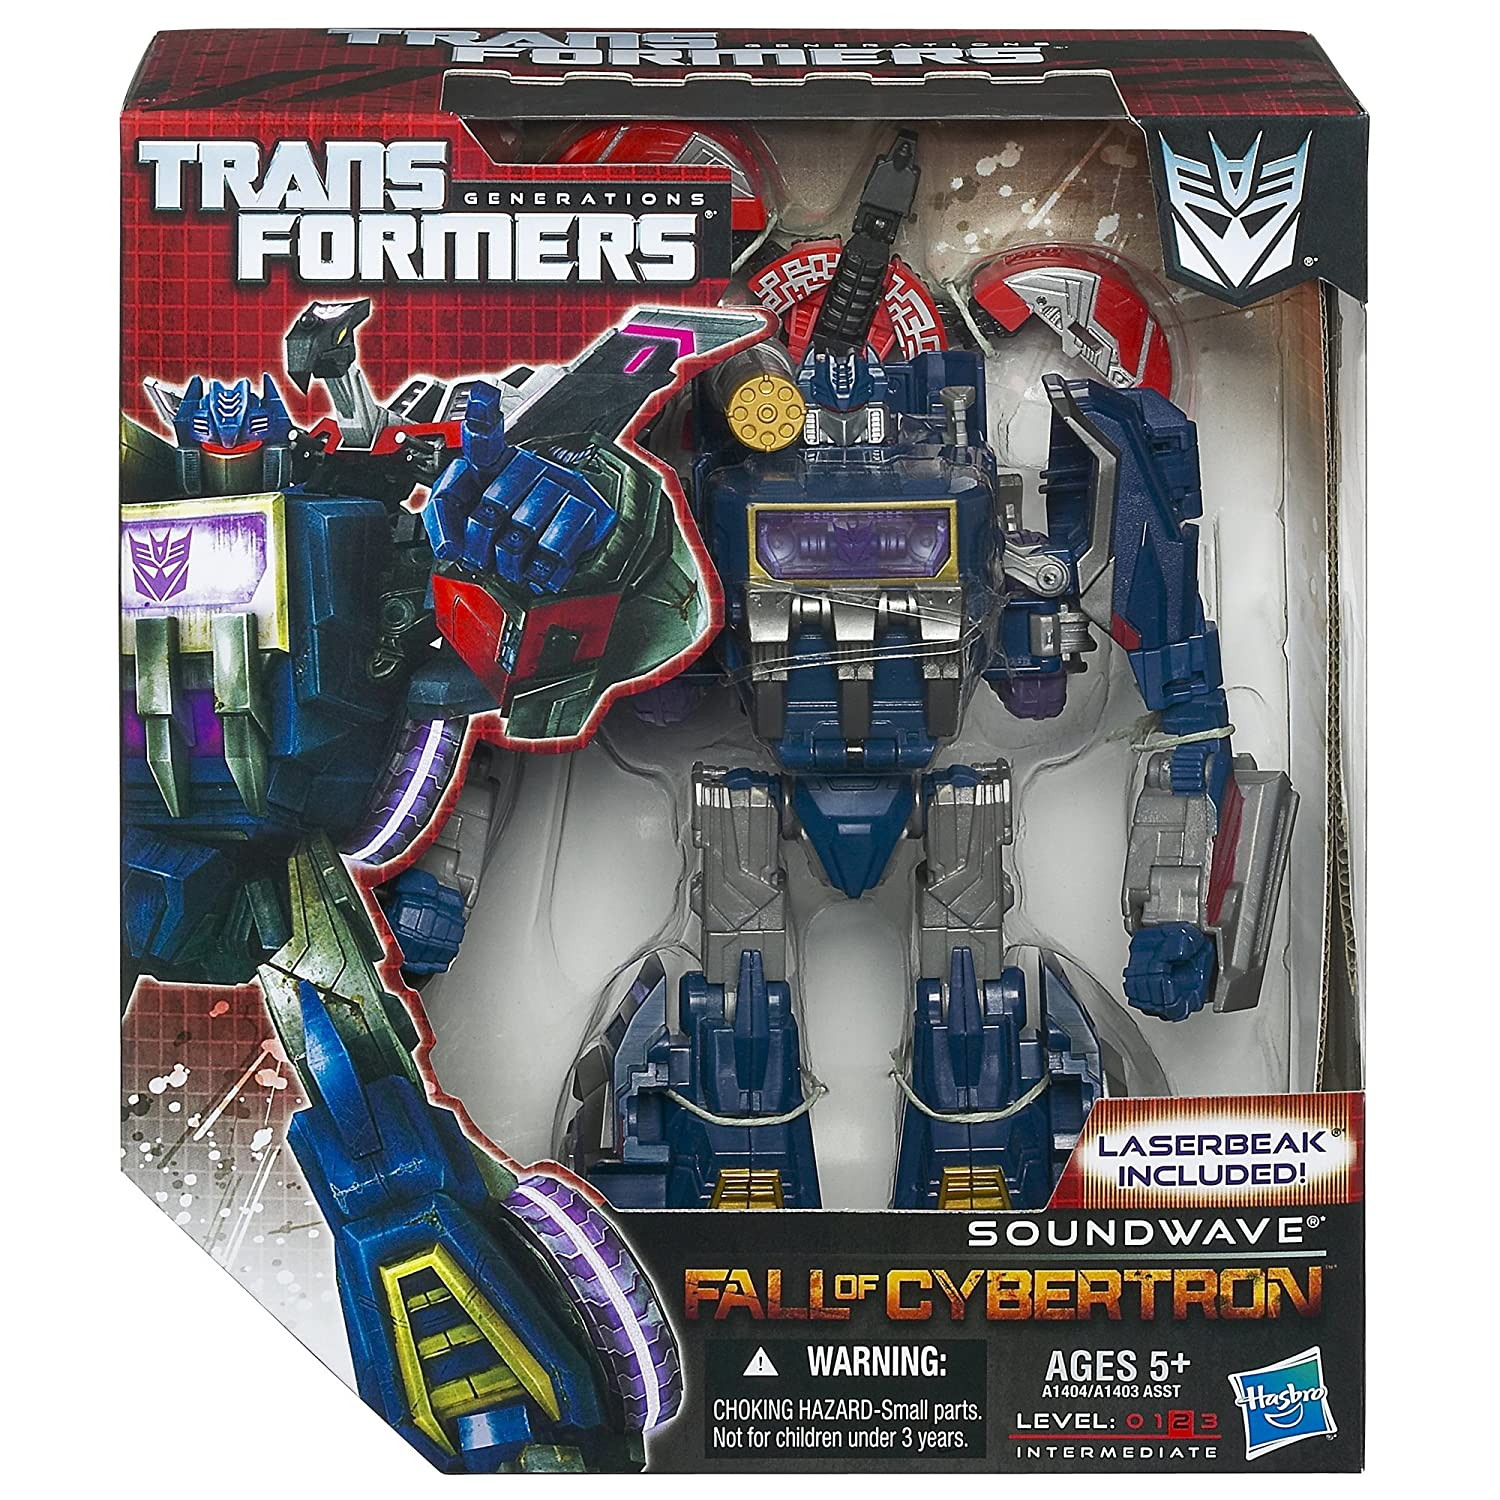 Review – Transformers Generations Cybertronian Soundwave